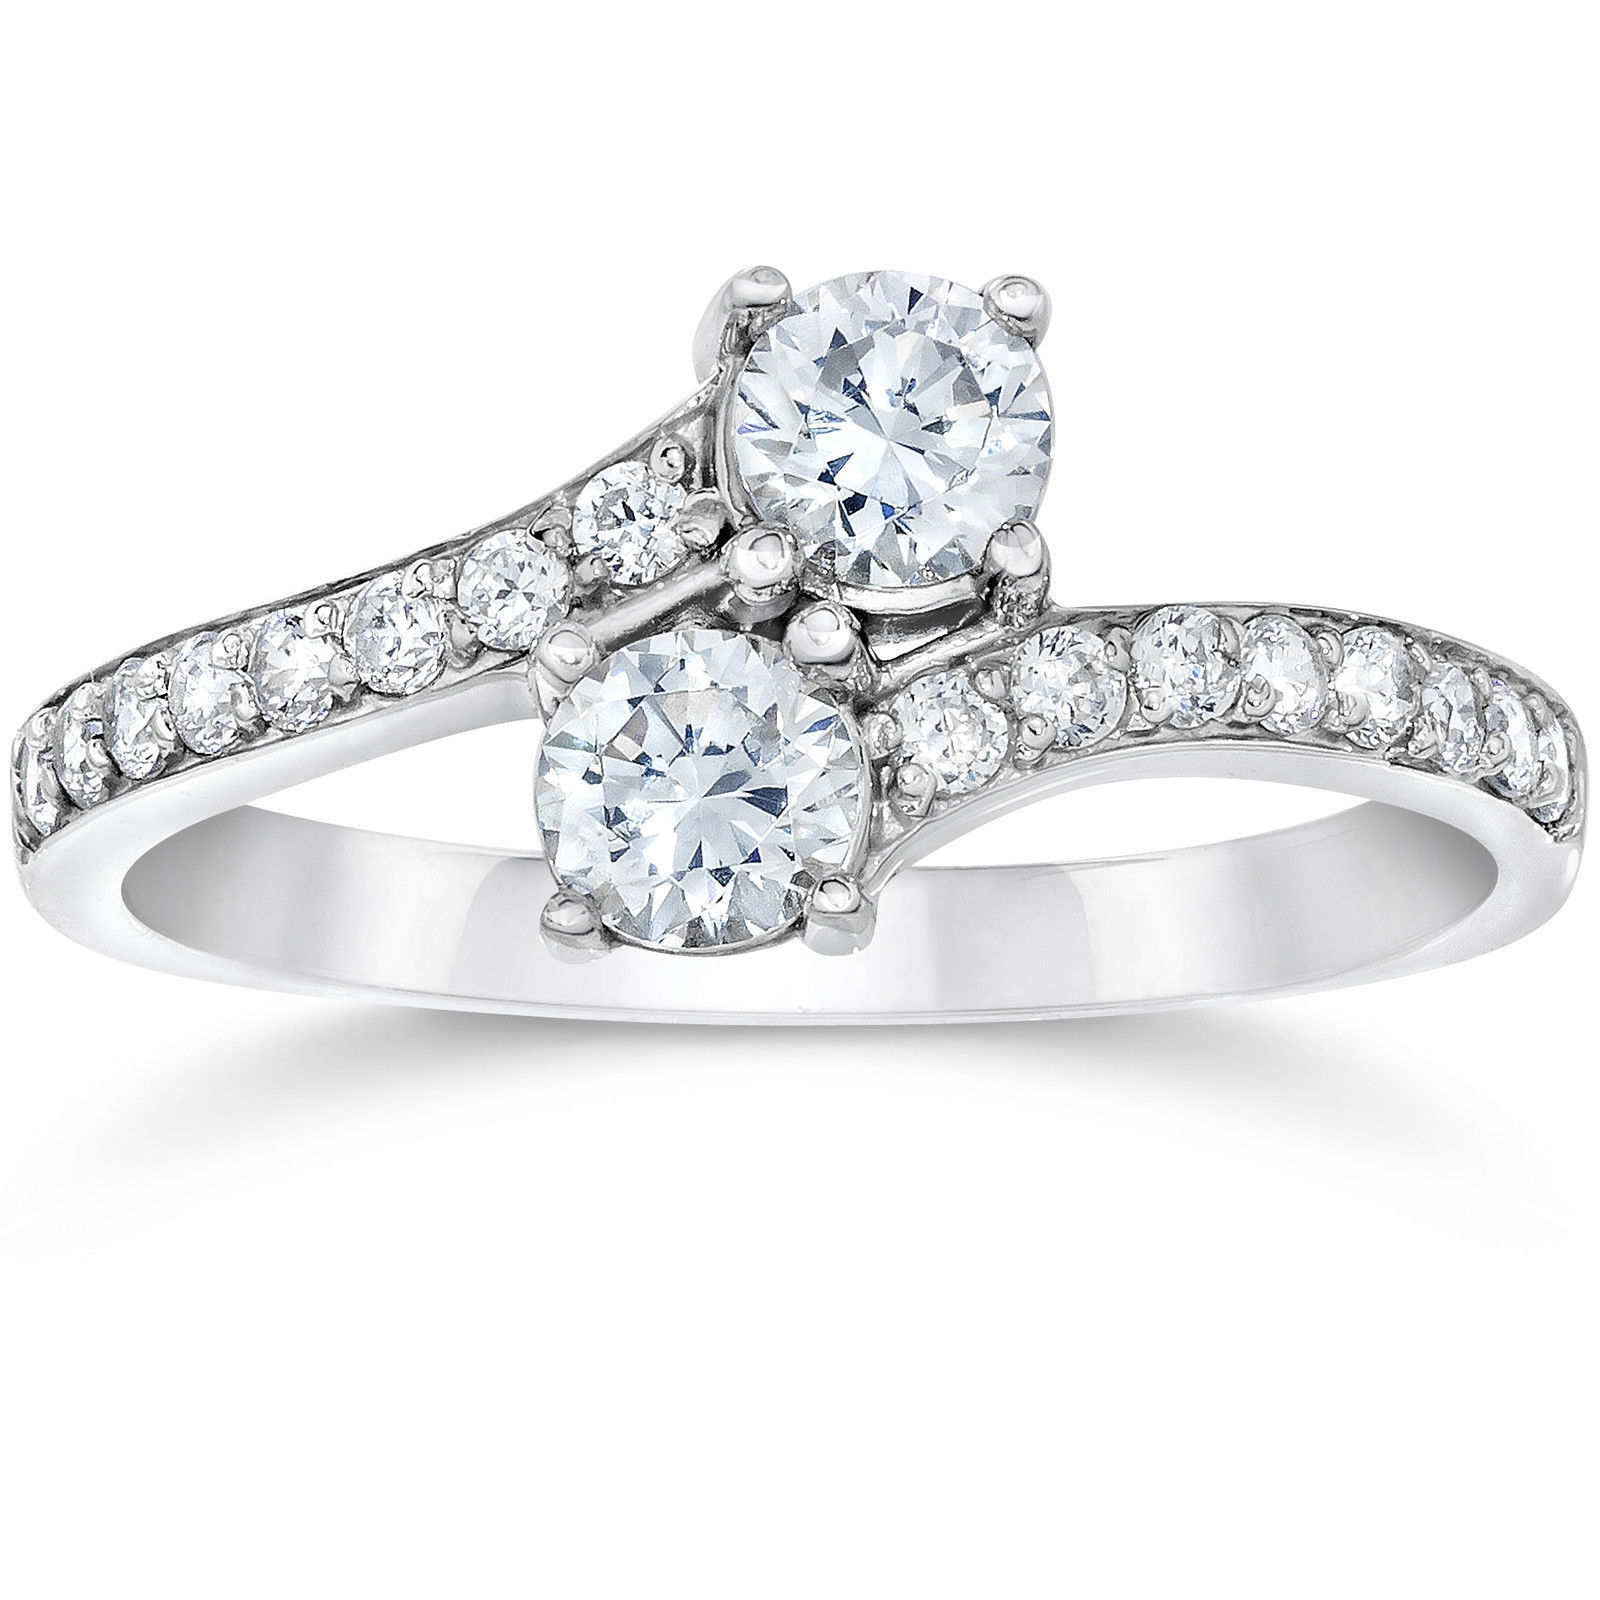 Primary image for 1.50Ct Forever Us 2 Stone Two Diamond Ring 14K White Gold